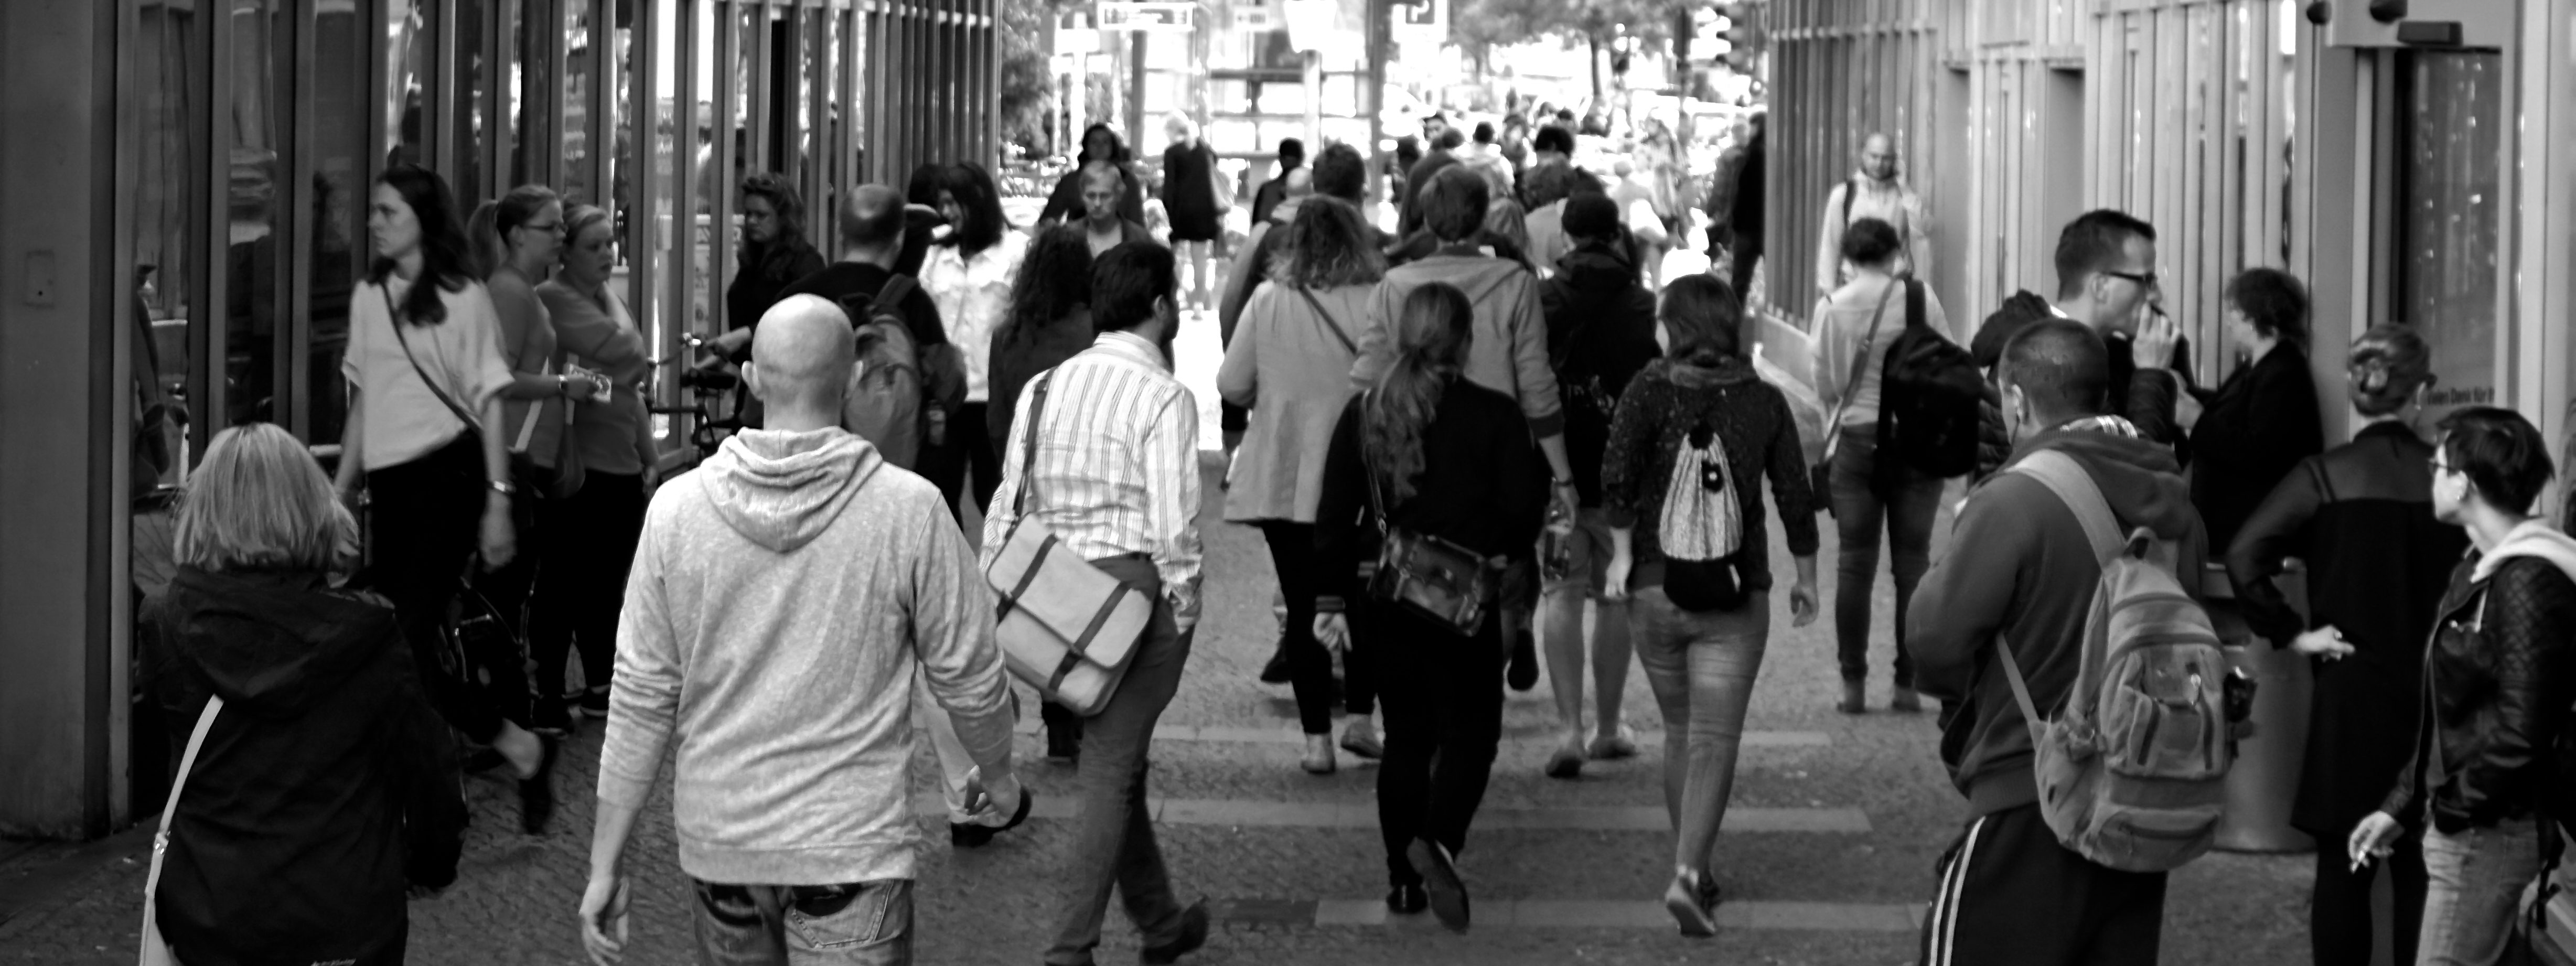 Photo of a crowd of people on a busy street.